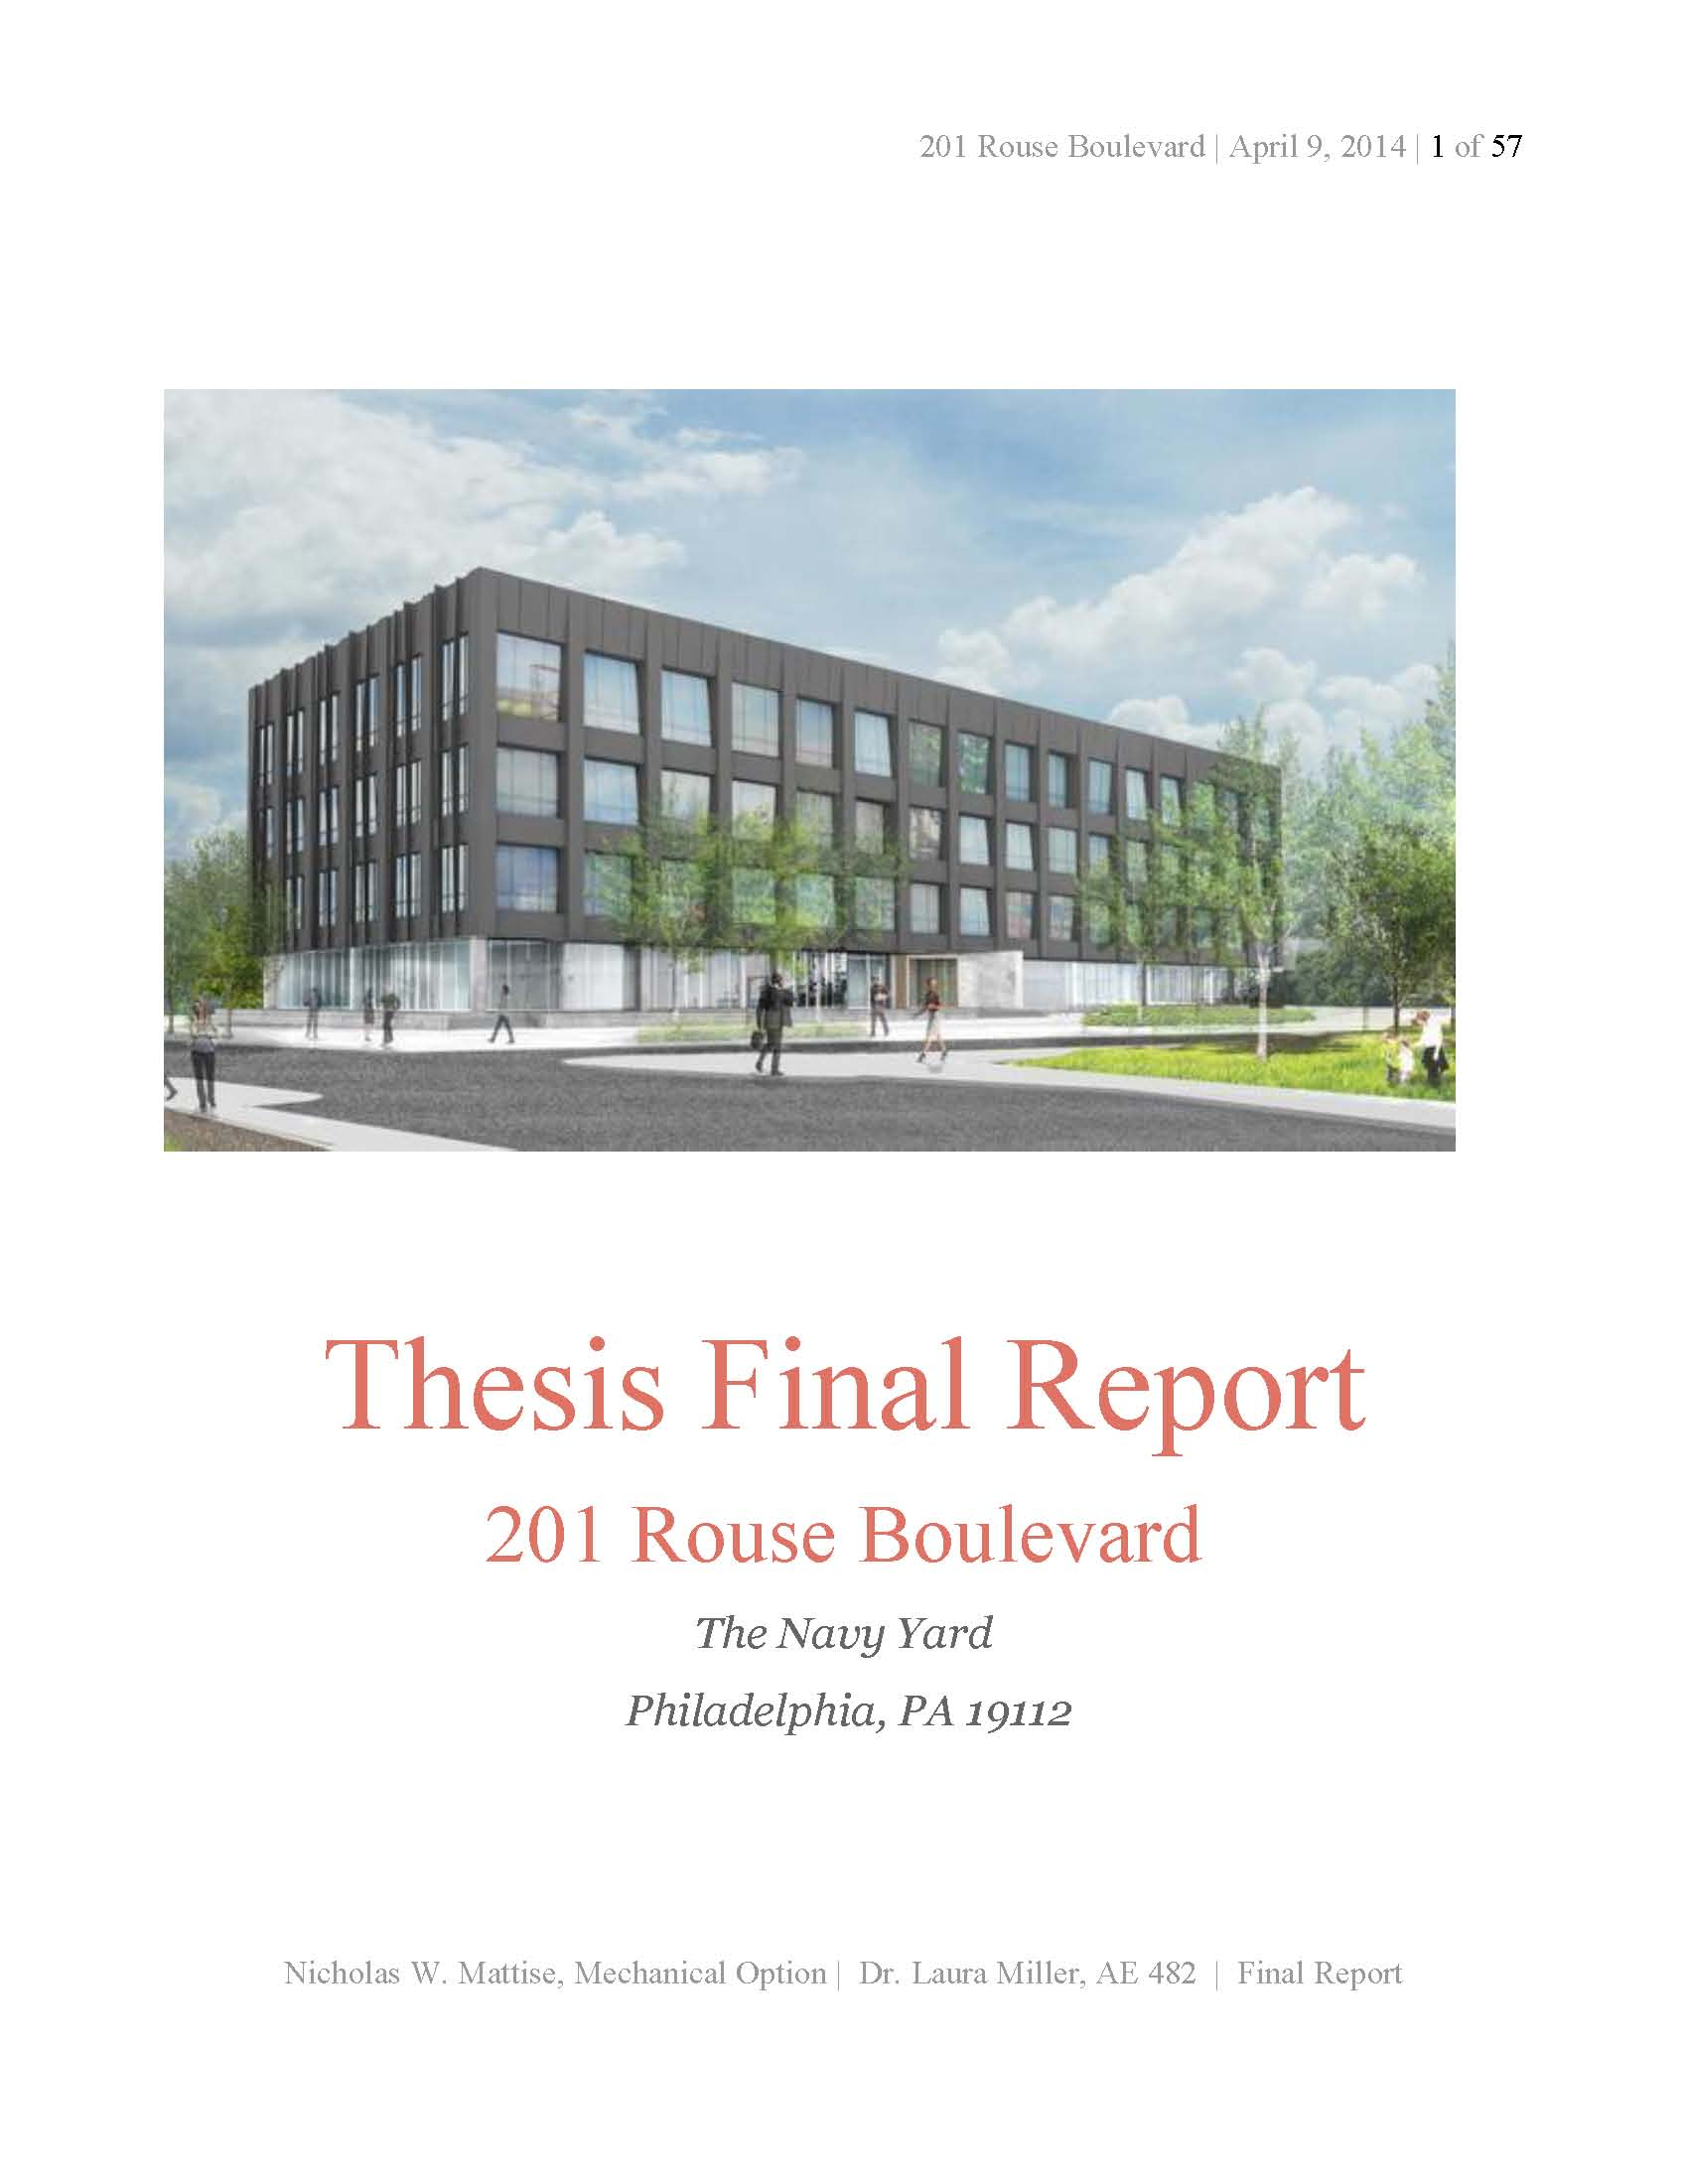 Thesis reports